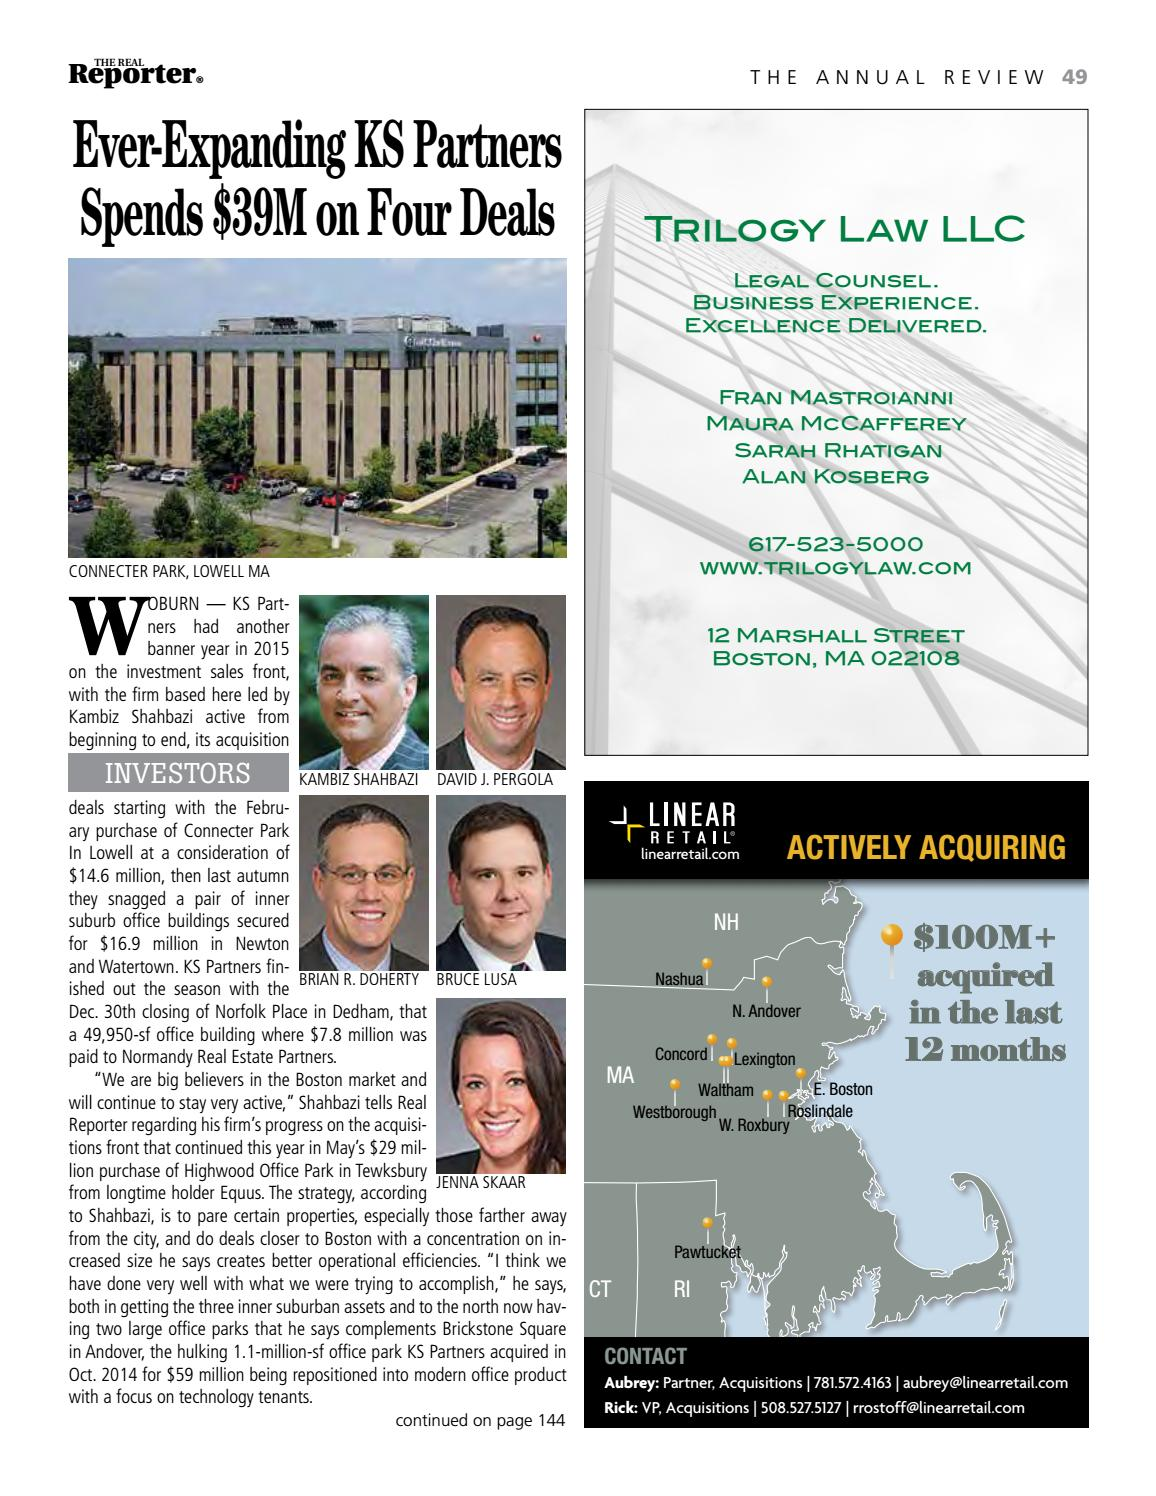 Commercial Real Estate Investment Yearbook By The Real Reporter Issuu